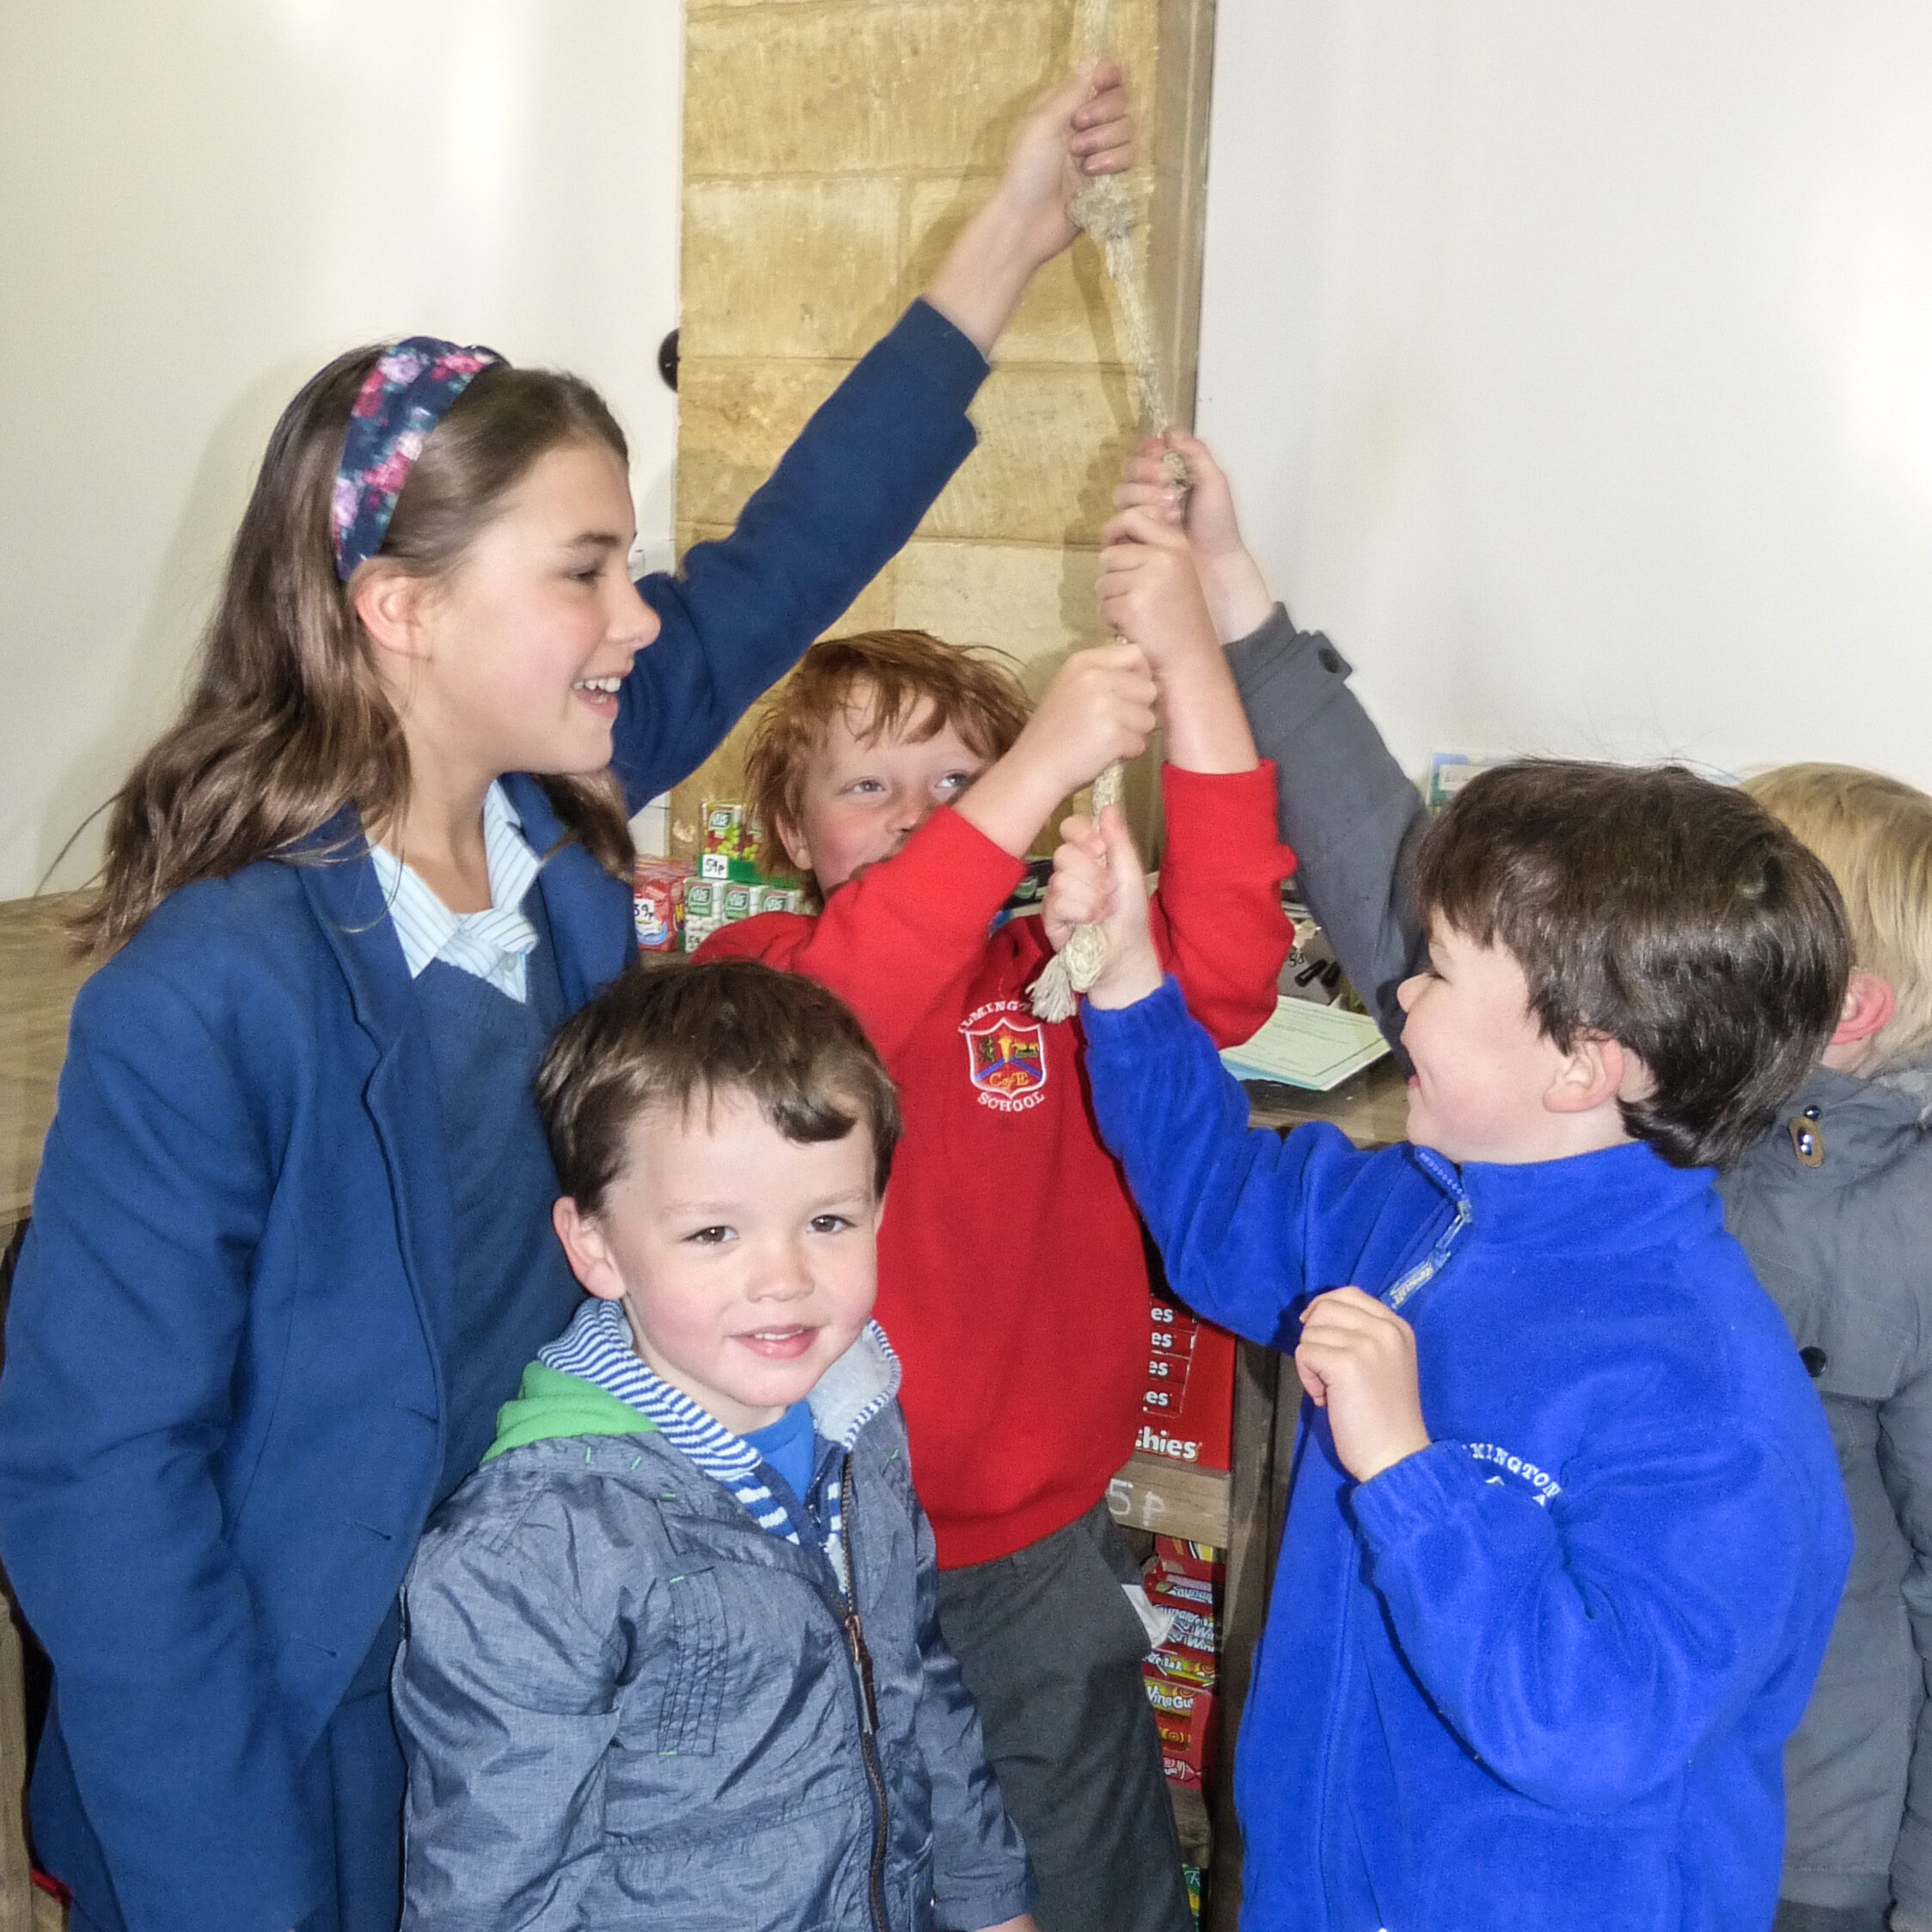 Local children ringing the bell to celebrate opening